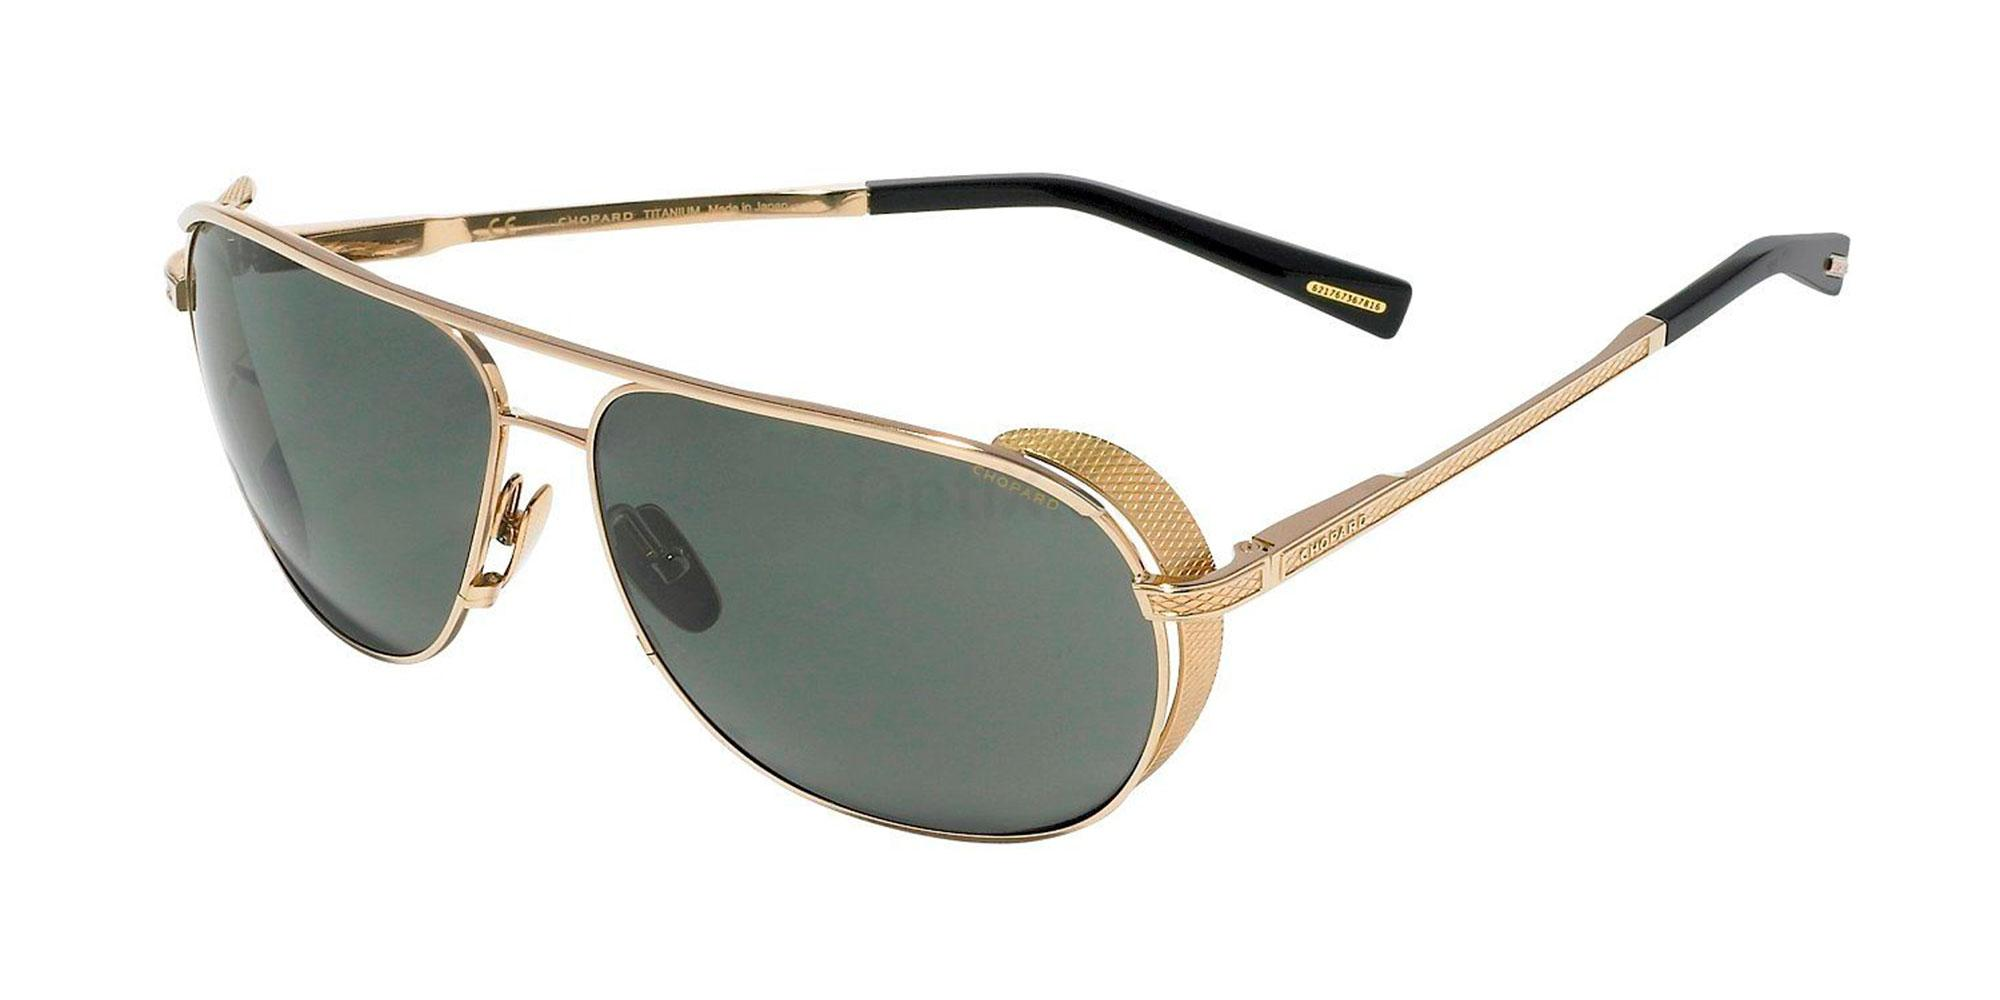 349P SCHC34M Sunglasses, Chopard